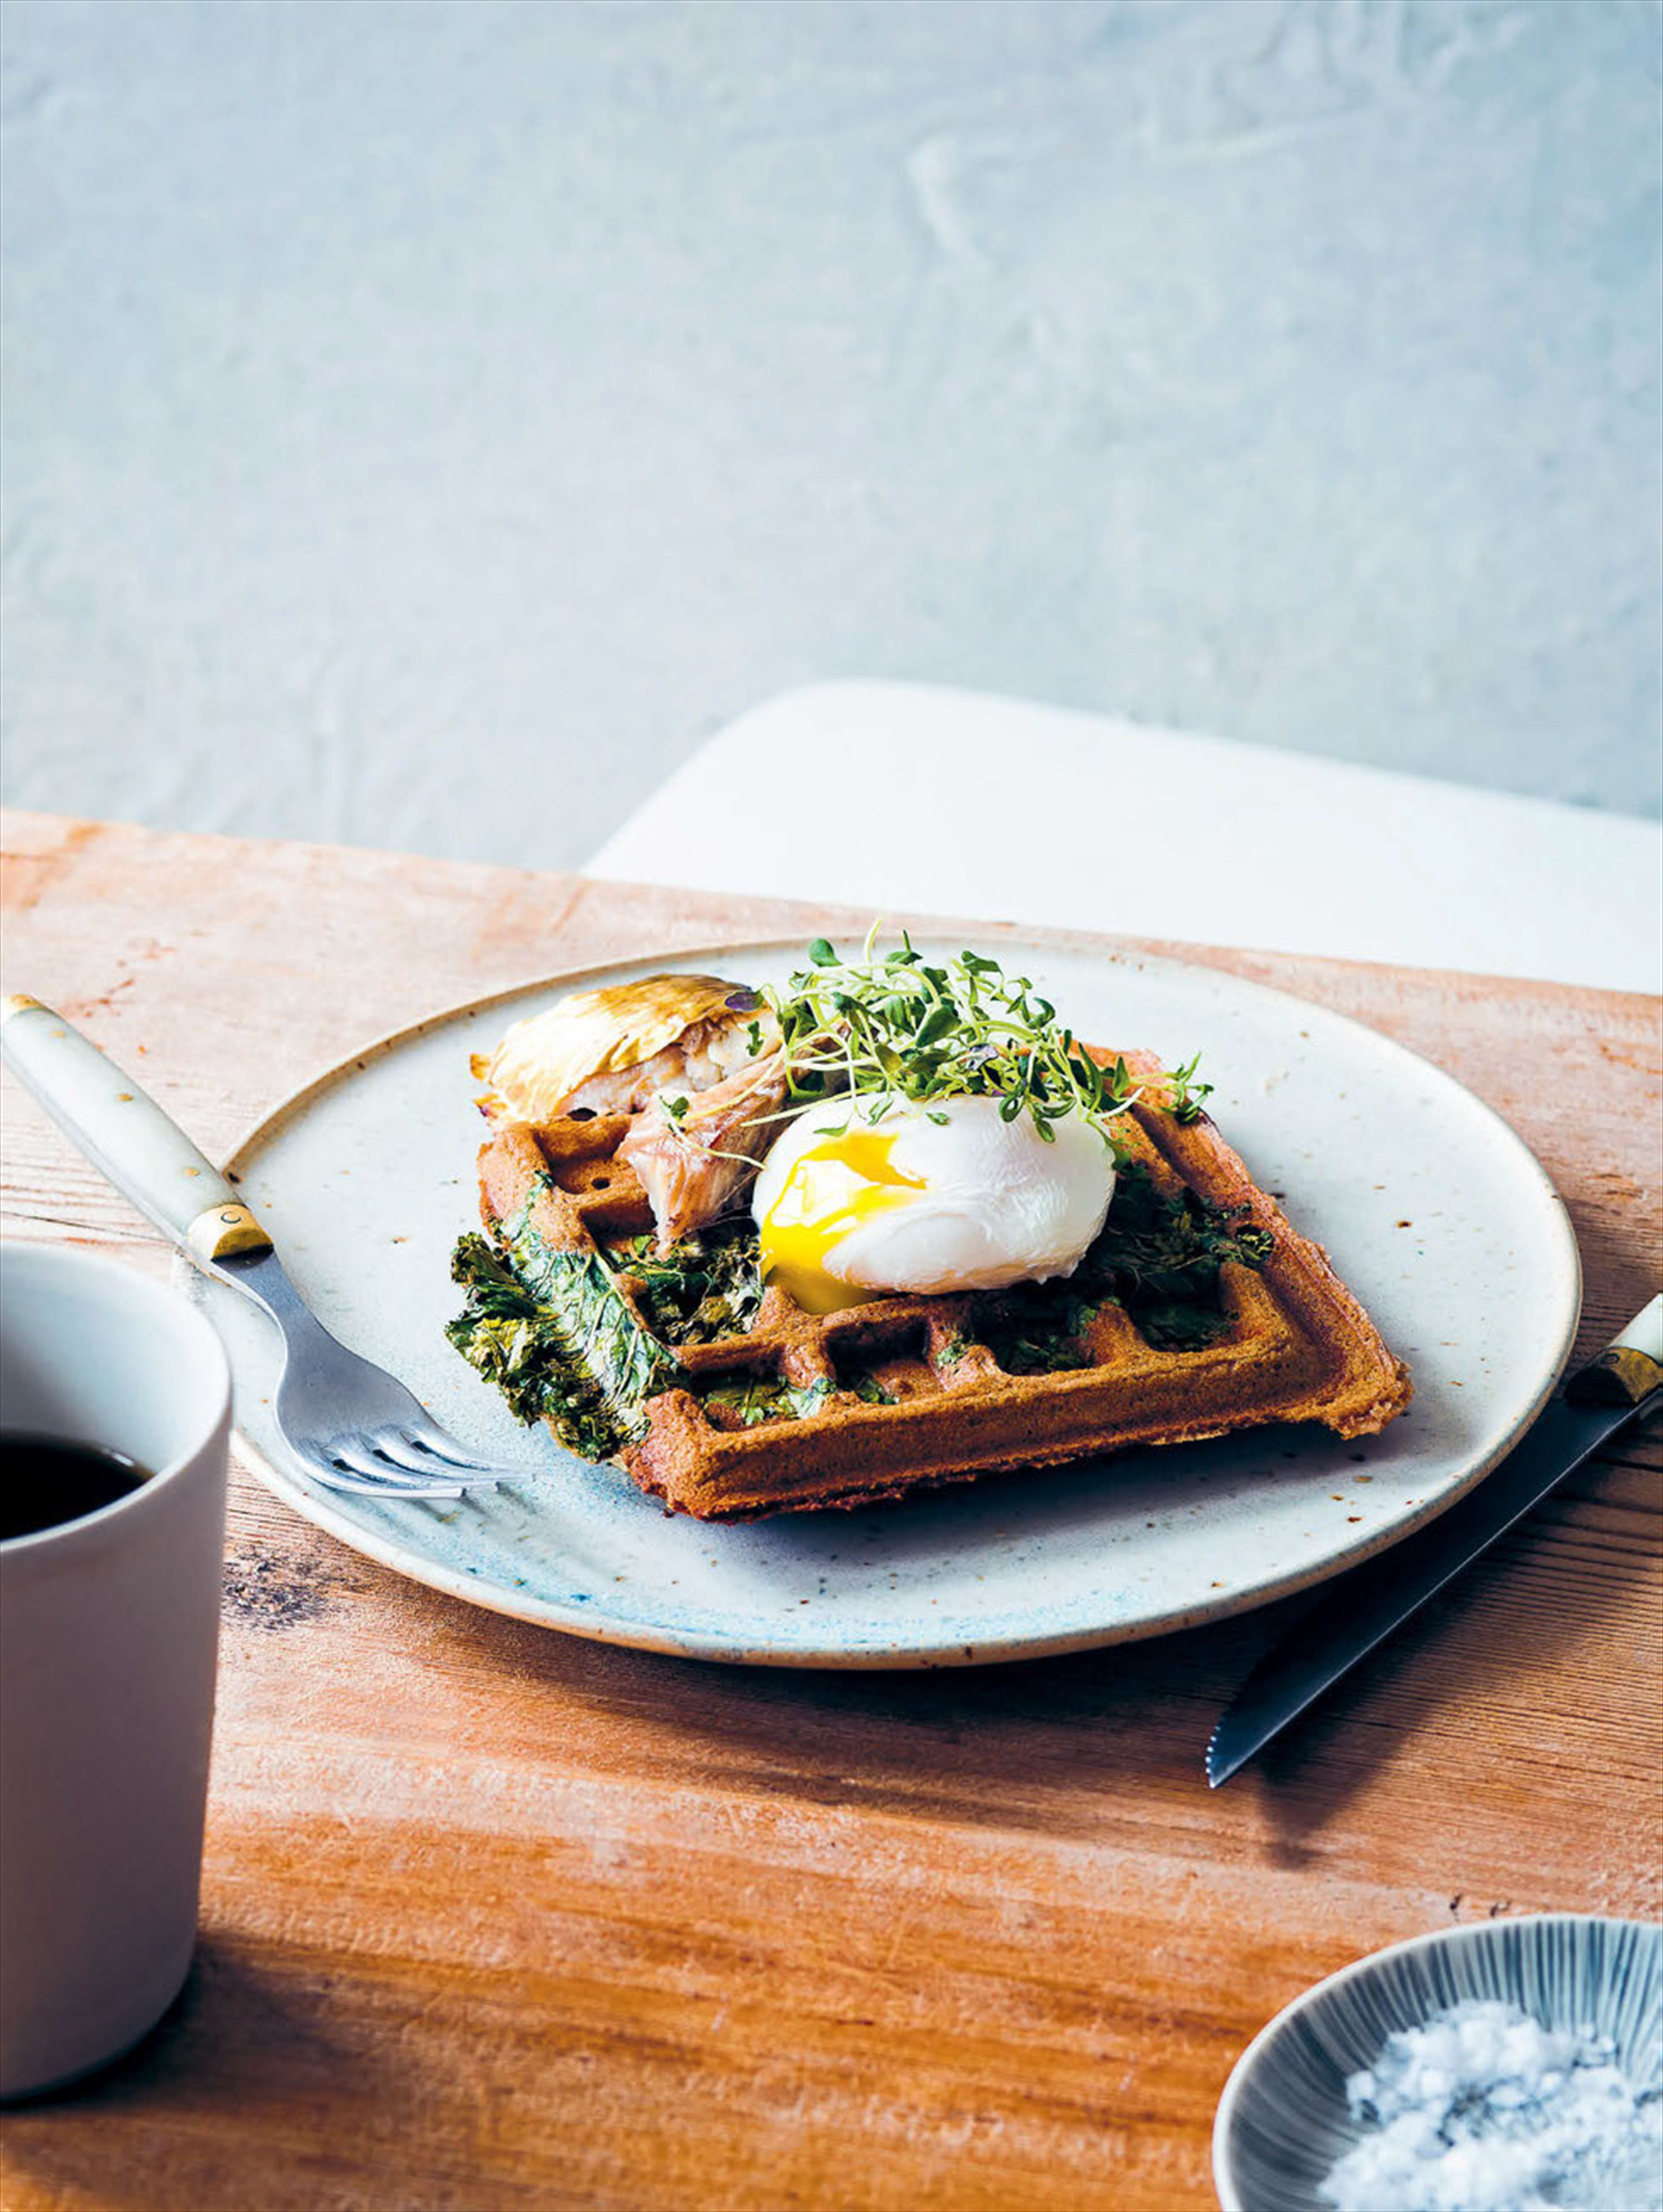 Kale & buckwheat waffles with eggs